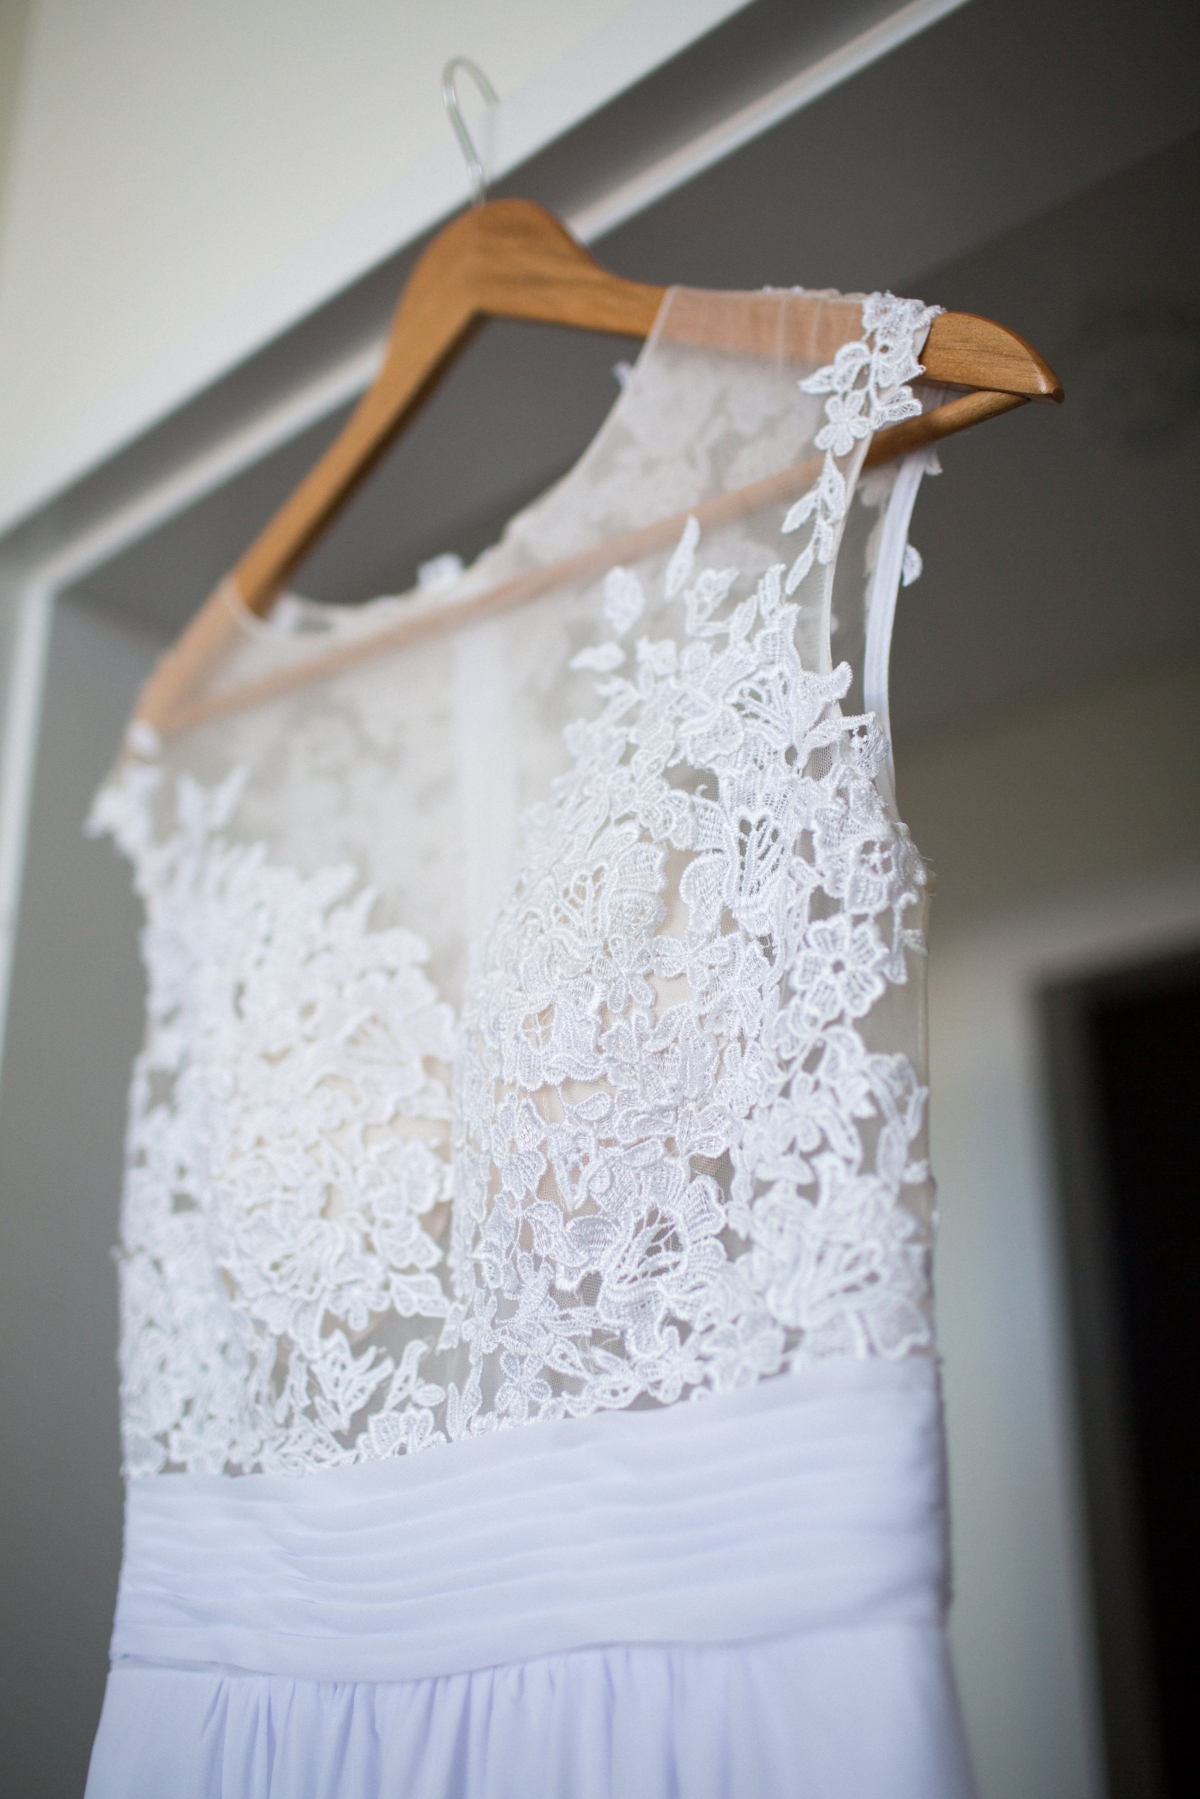 View More: http://ameliaclairephoto.pass.us/mandy-and-aleks-wedding